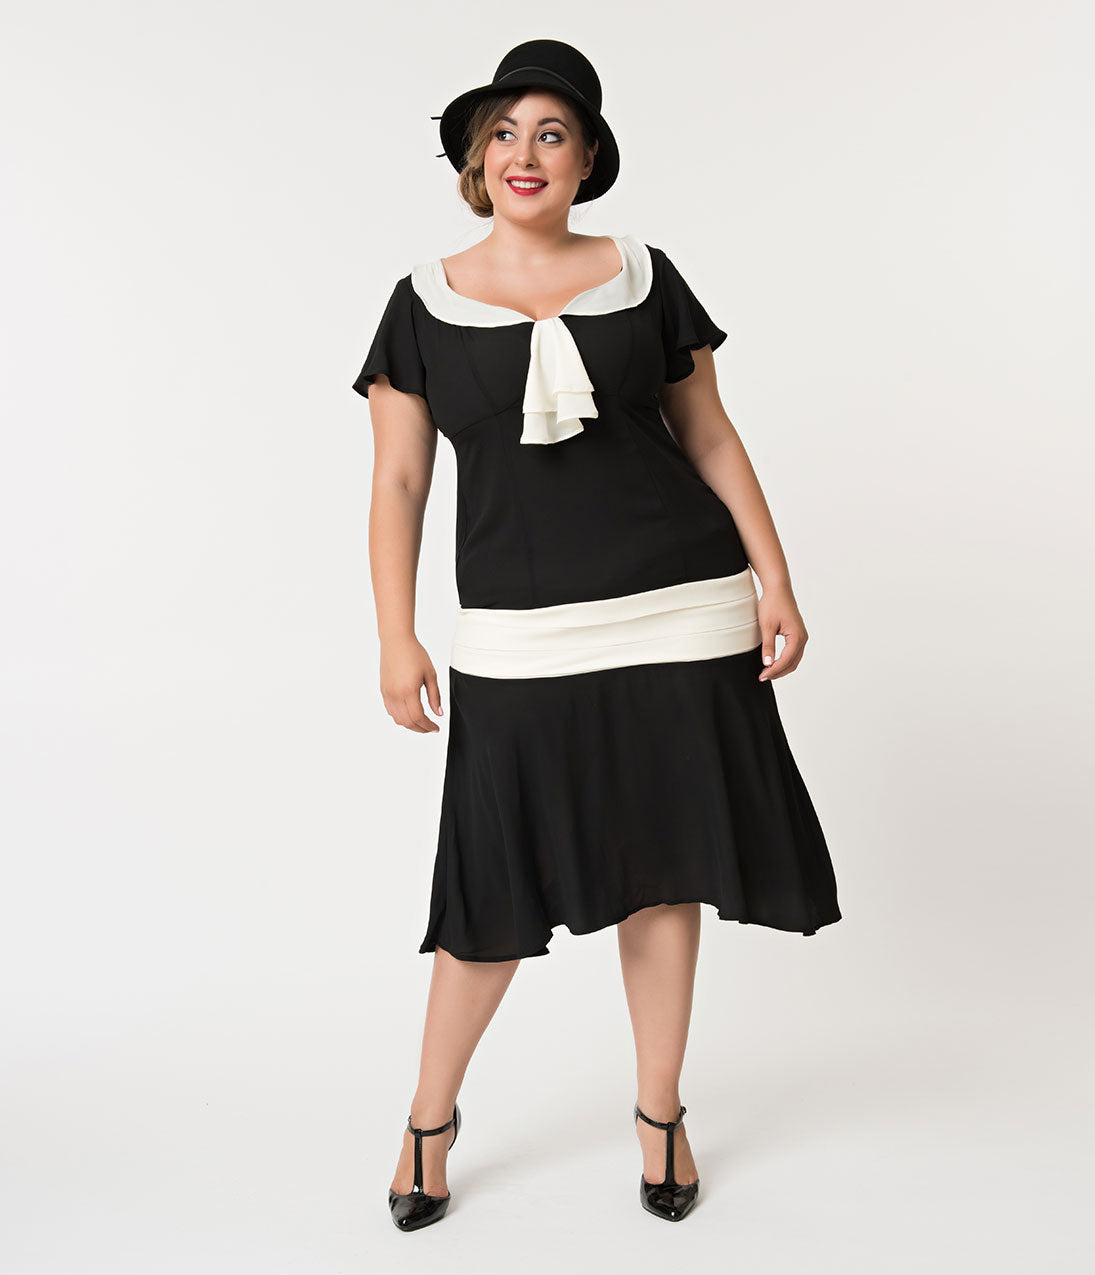 1920s Fashion & Clothing | Roaring 20s Attire Unique Vintage Plus Size 1920S Black  Cream Wilshire Flapper Day Dress $78.00 AT vintagedancer.com